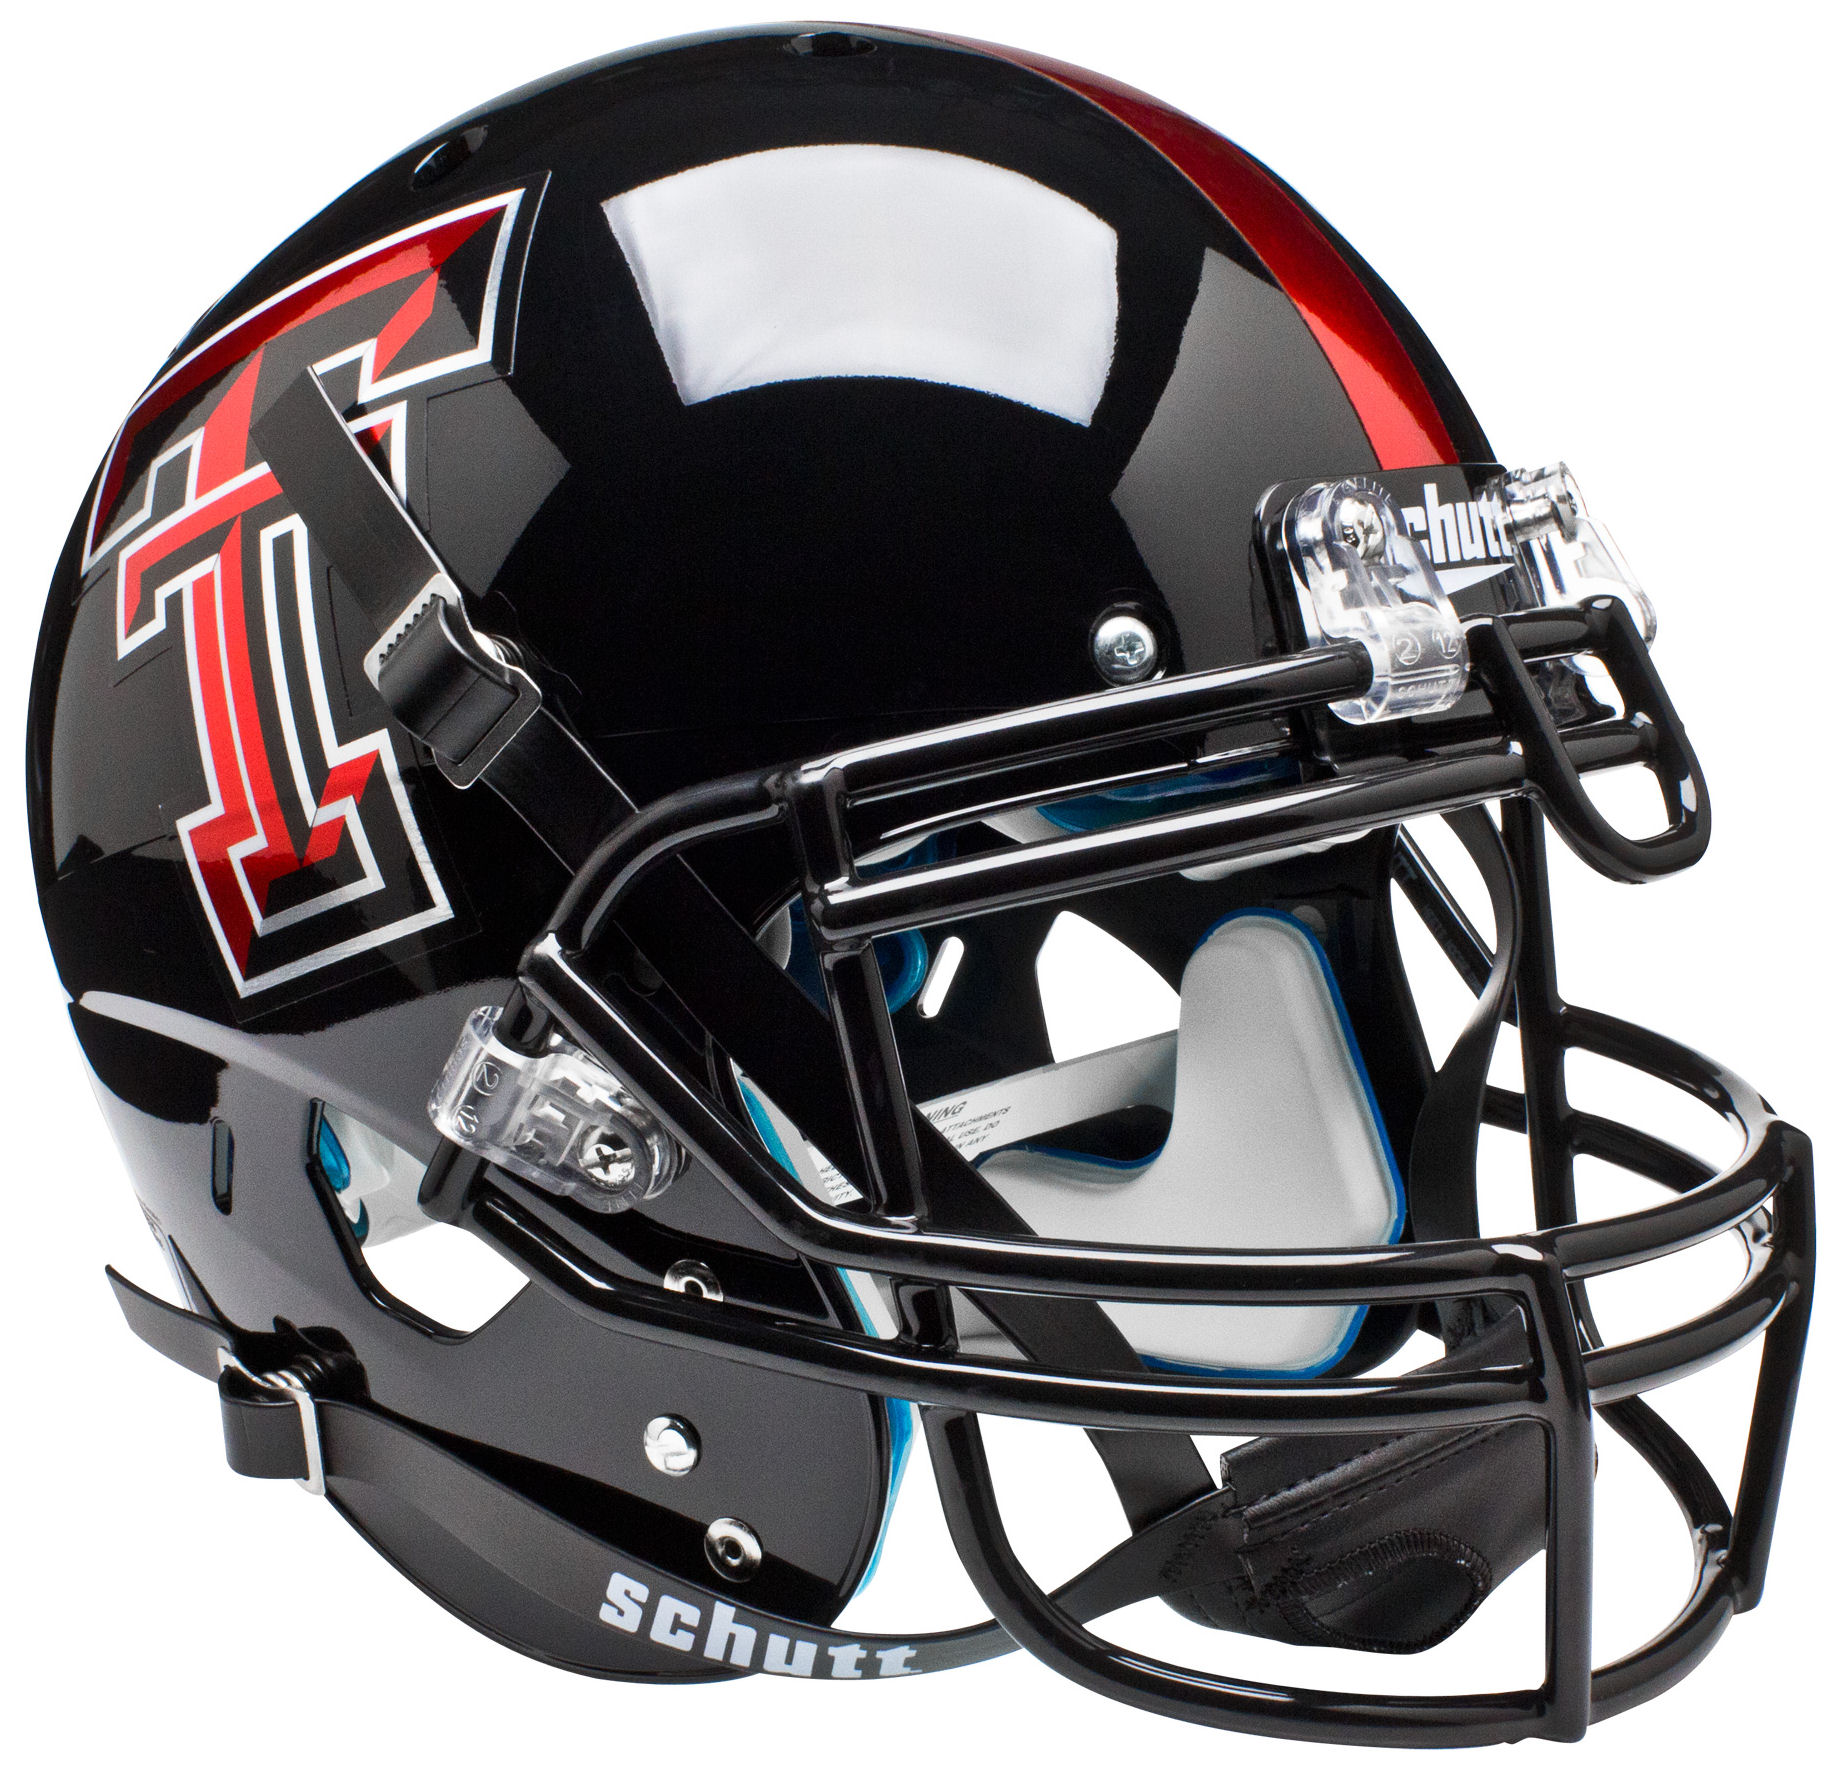 Texas Tech Red Raiders Authentic College XP Football Helmet Schutt <B>Chrome Logo</B>